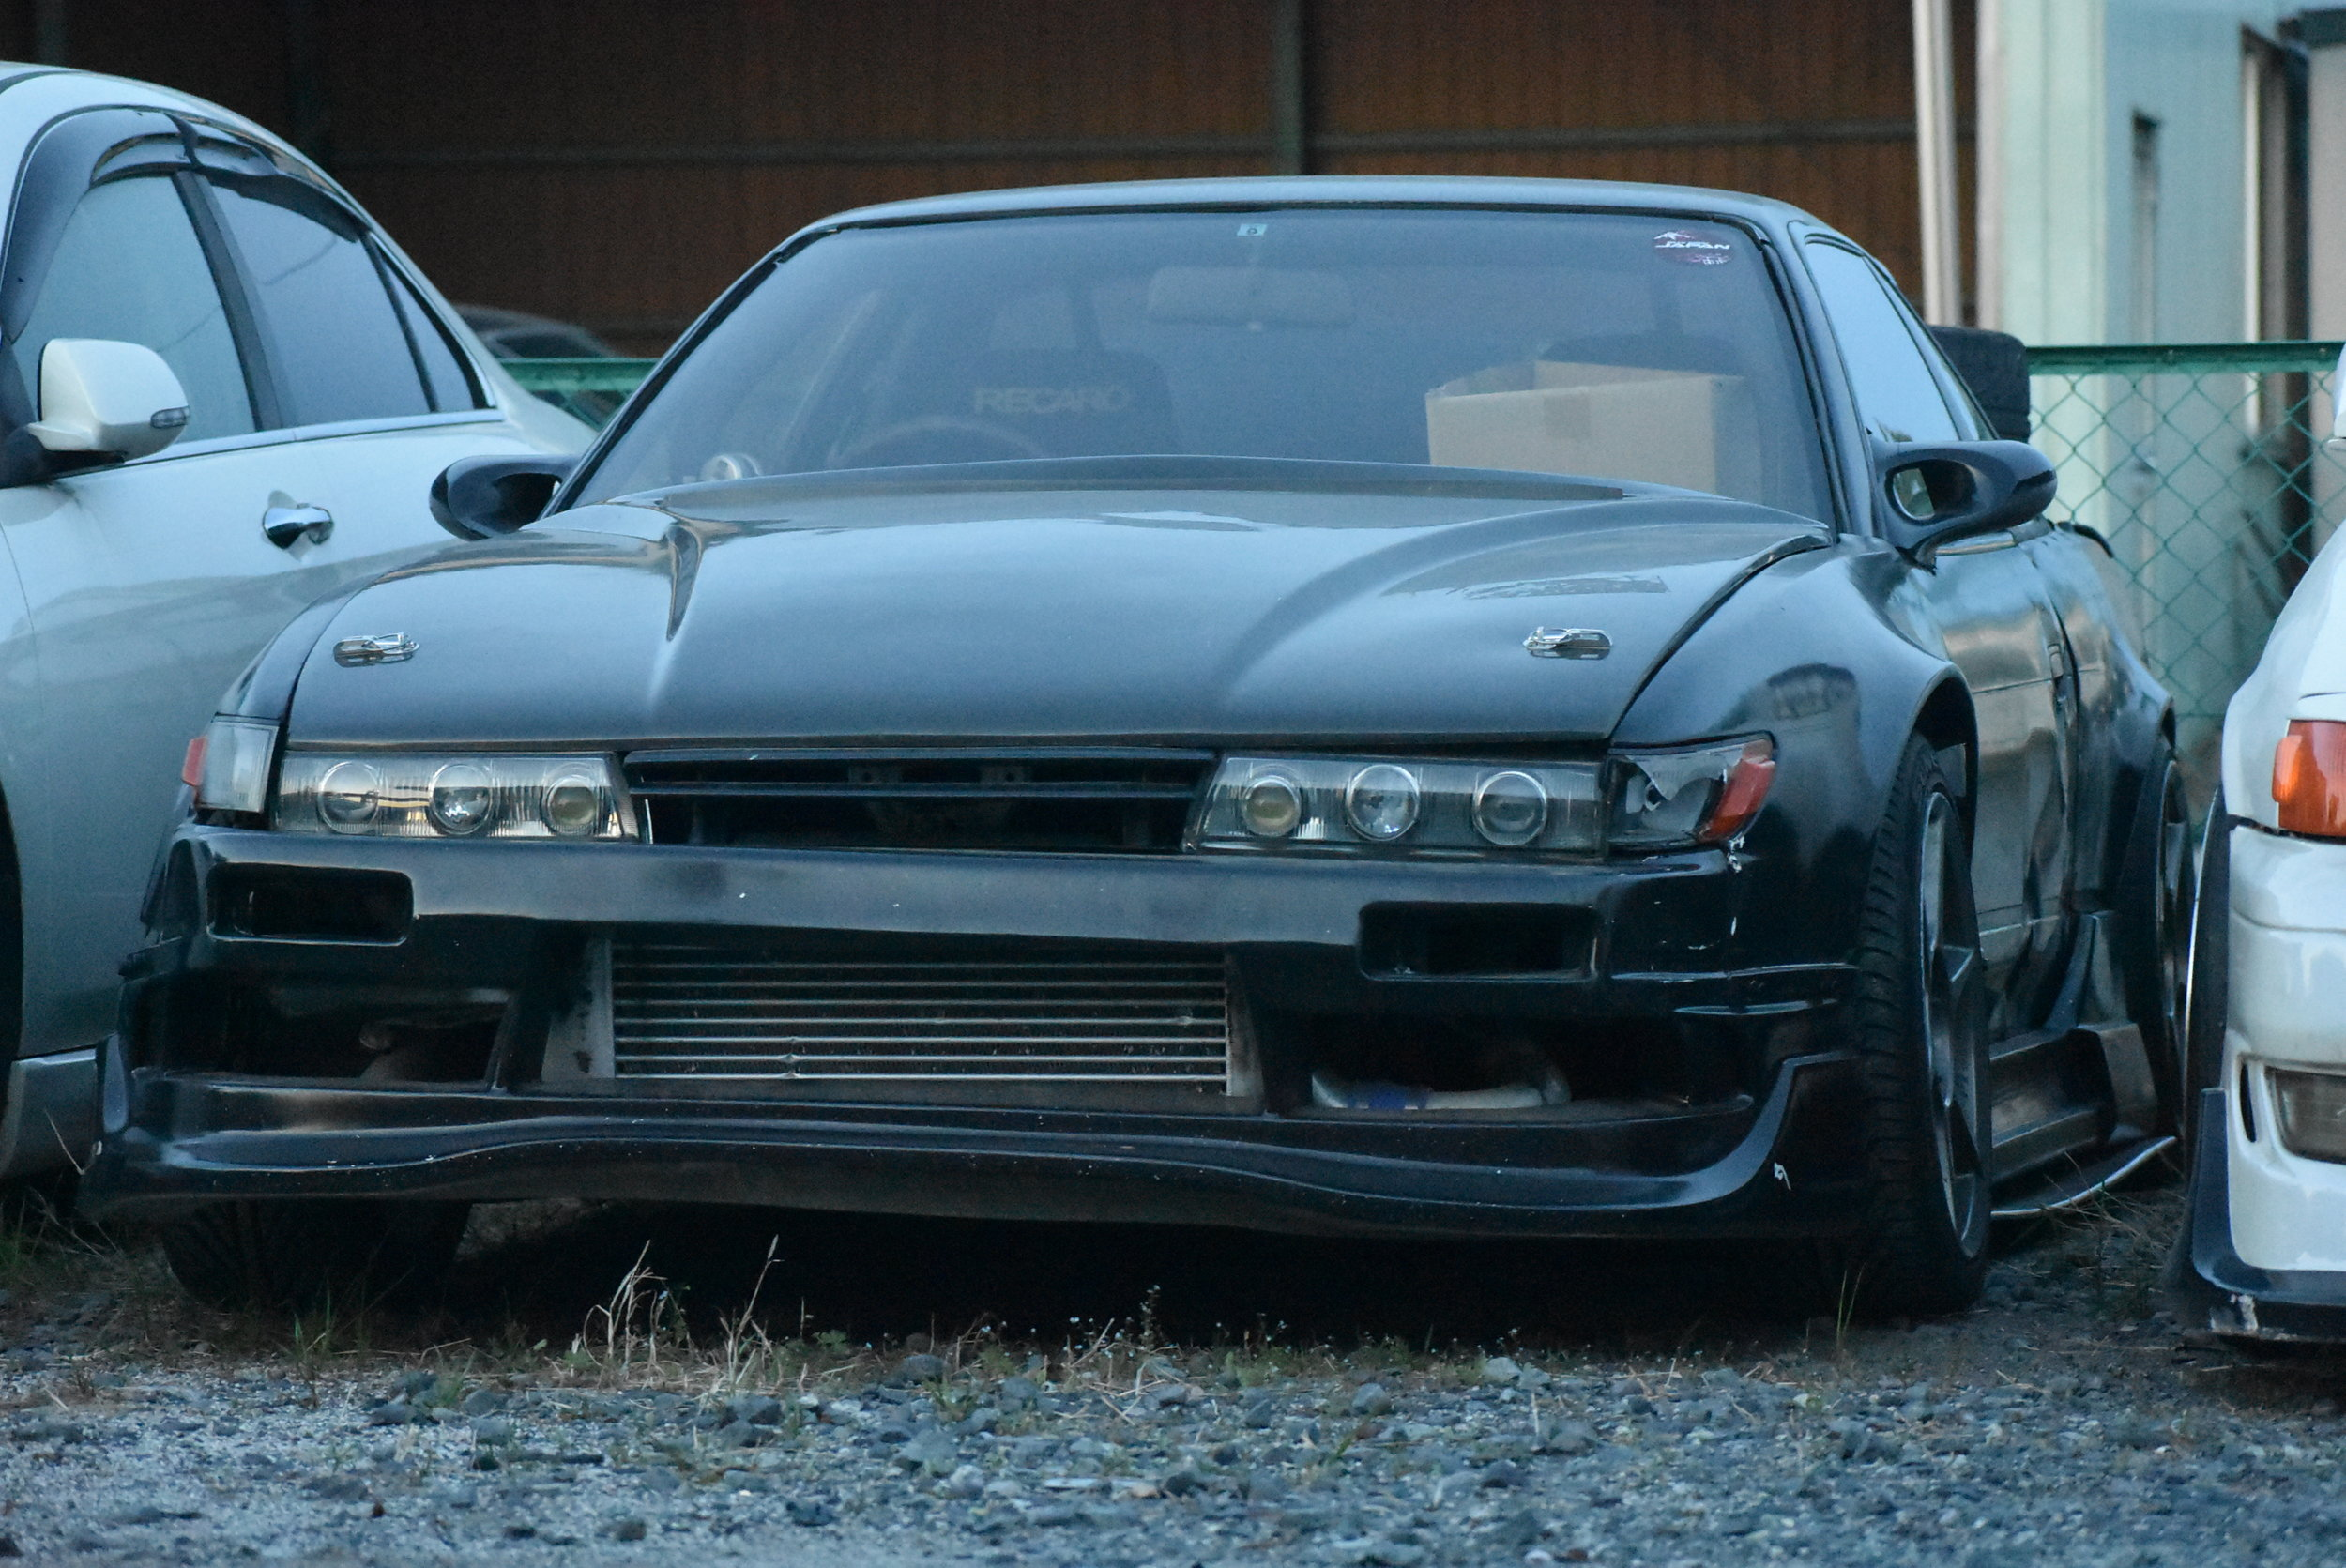 Last trip, I bumped a buddy while chasing him in the mountains and it pushed the whole front bumper/support over a bit, so the Silvia is a bit ugly at the moment, haha.